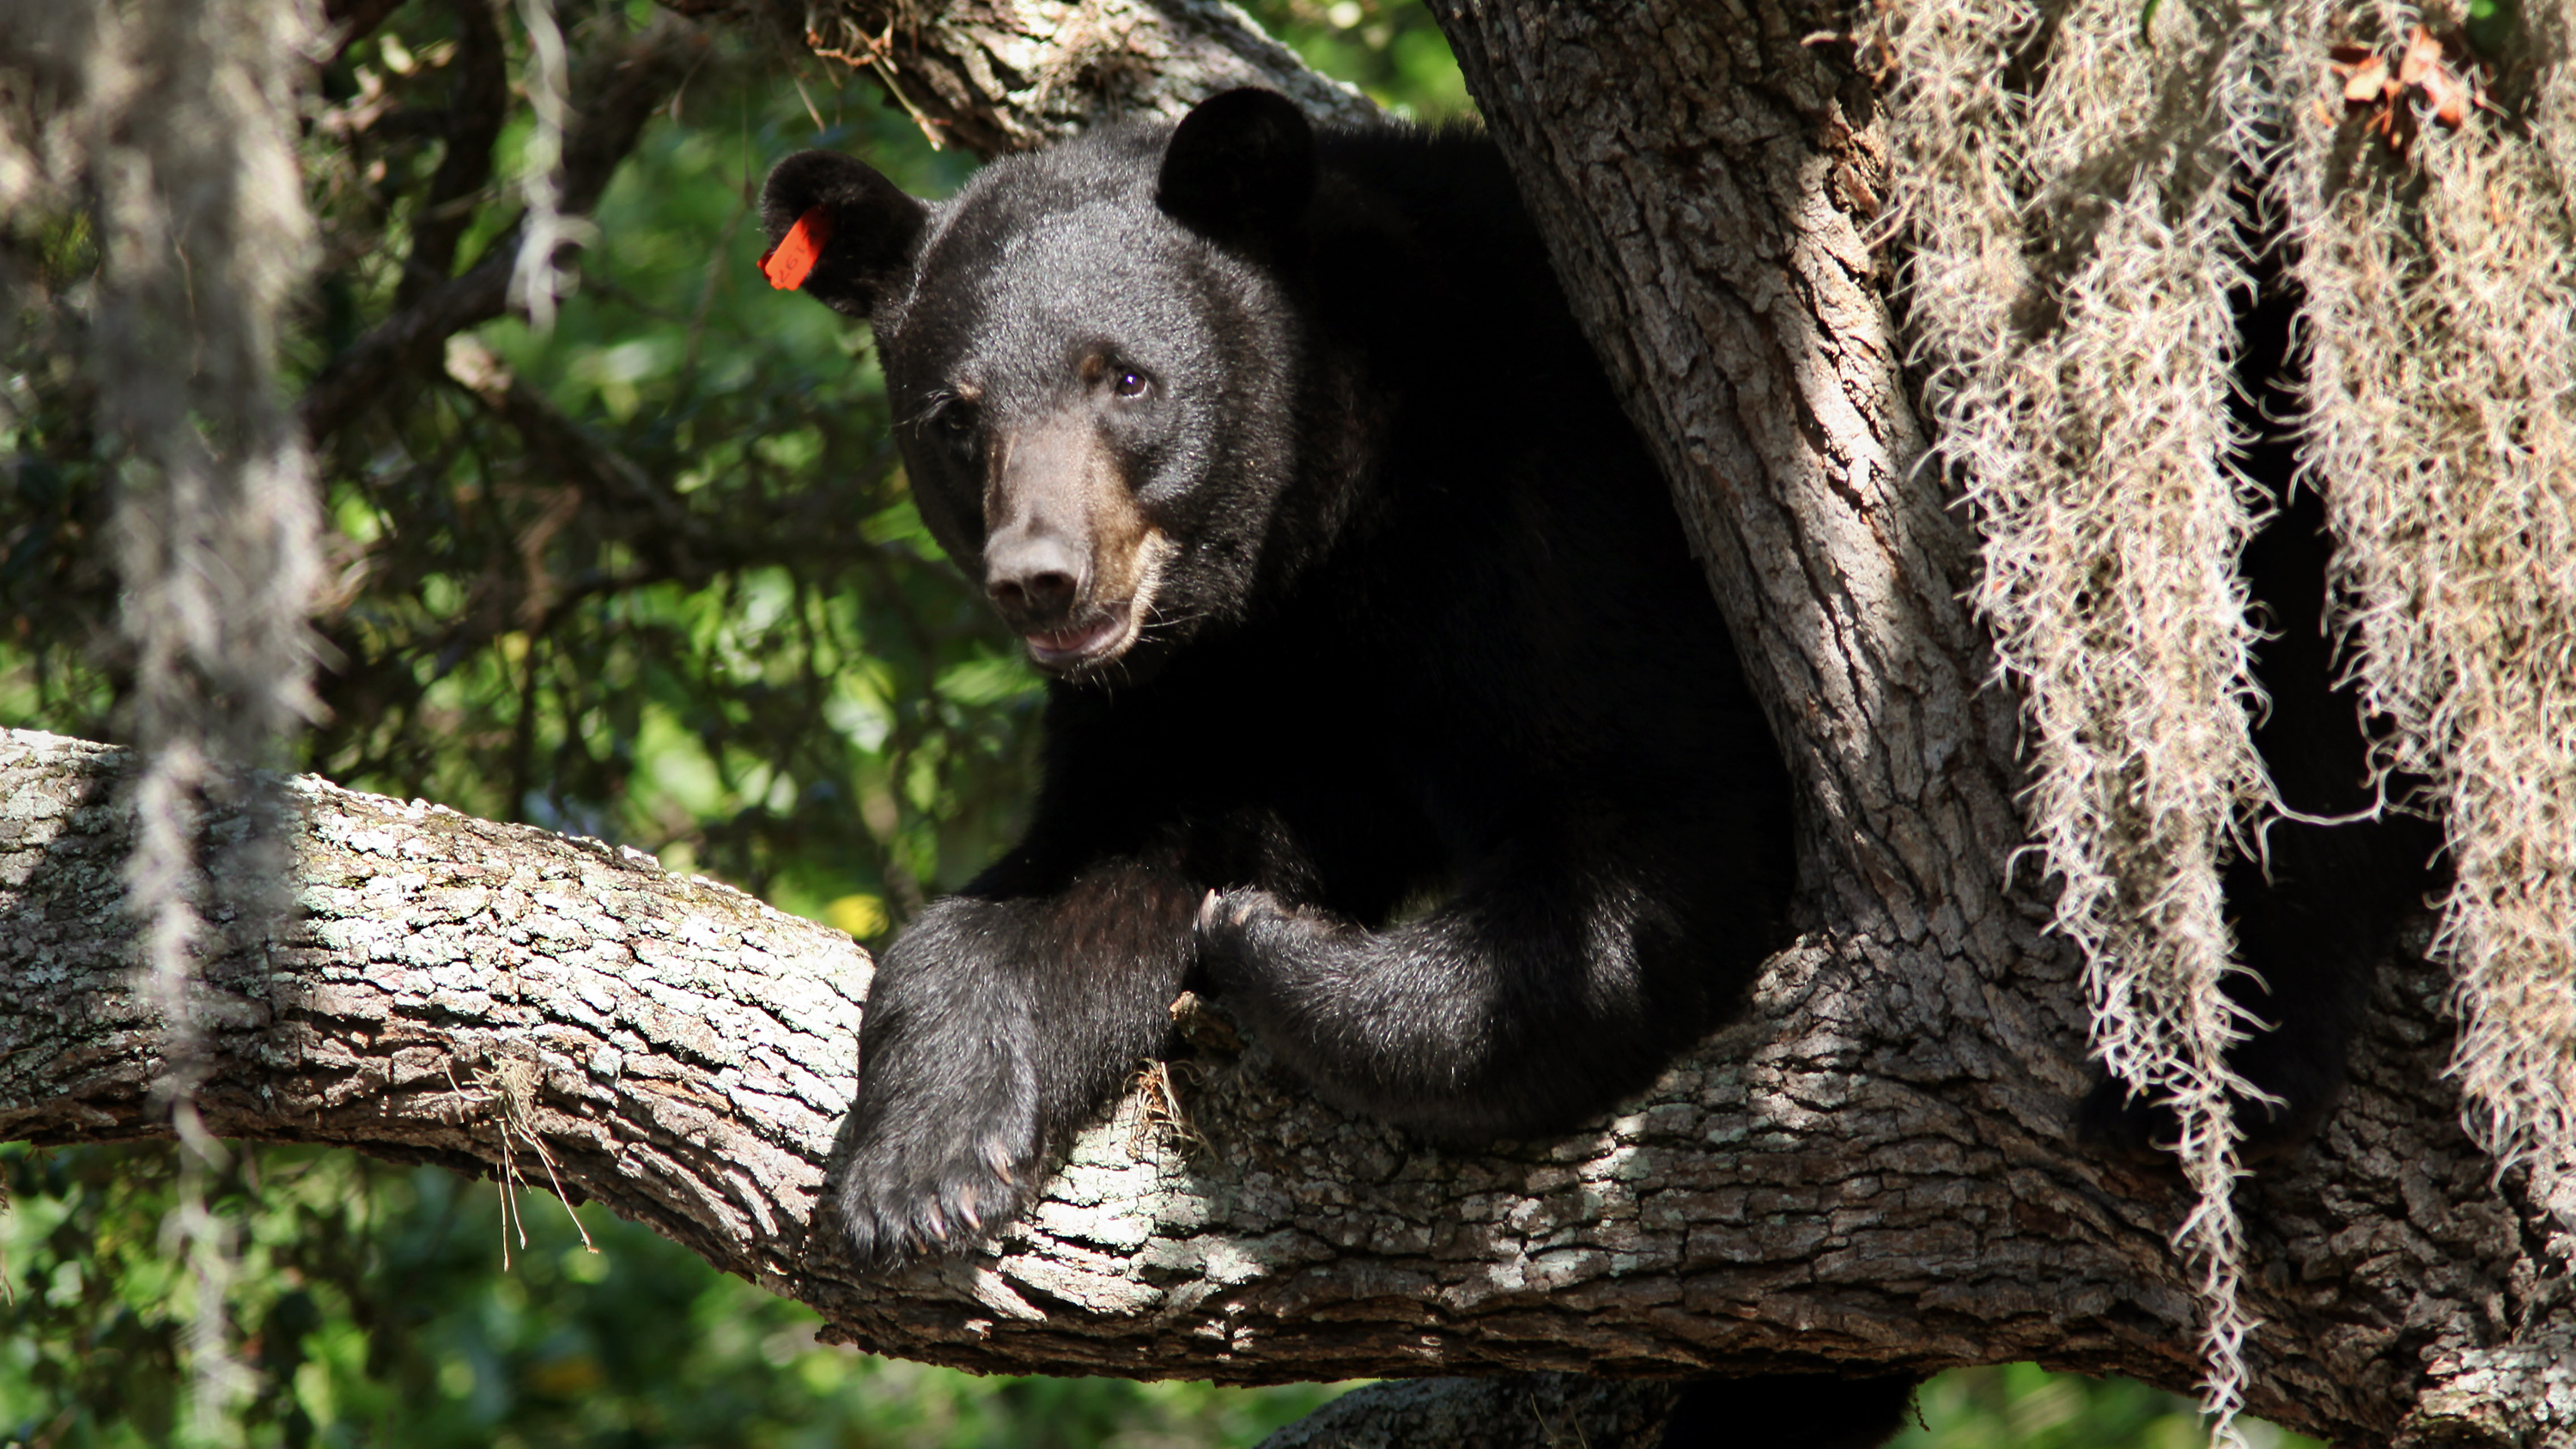 This black bear was spotted atop a tree in Tampa, Fla., on May 17, 2013. The bear population has been on the rise, so state wildlife officials are calling for a bear hunting season. Skip O'Rourke /MCT /Landov